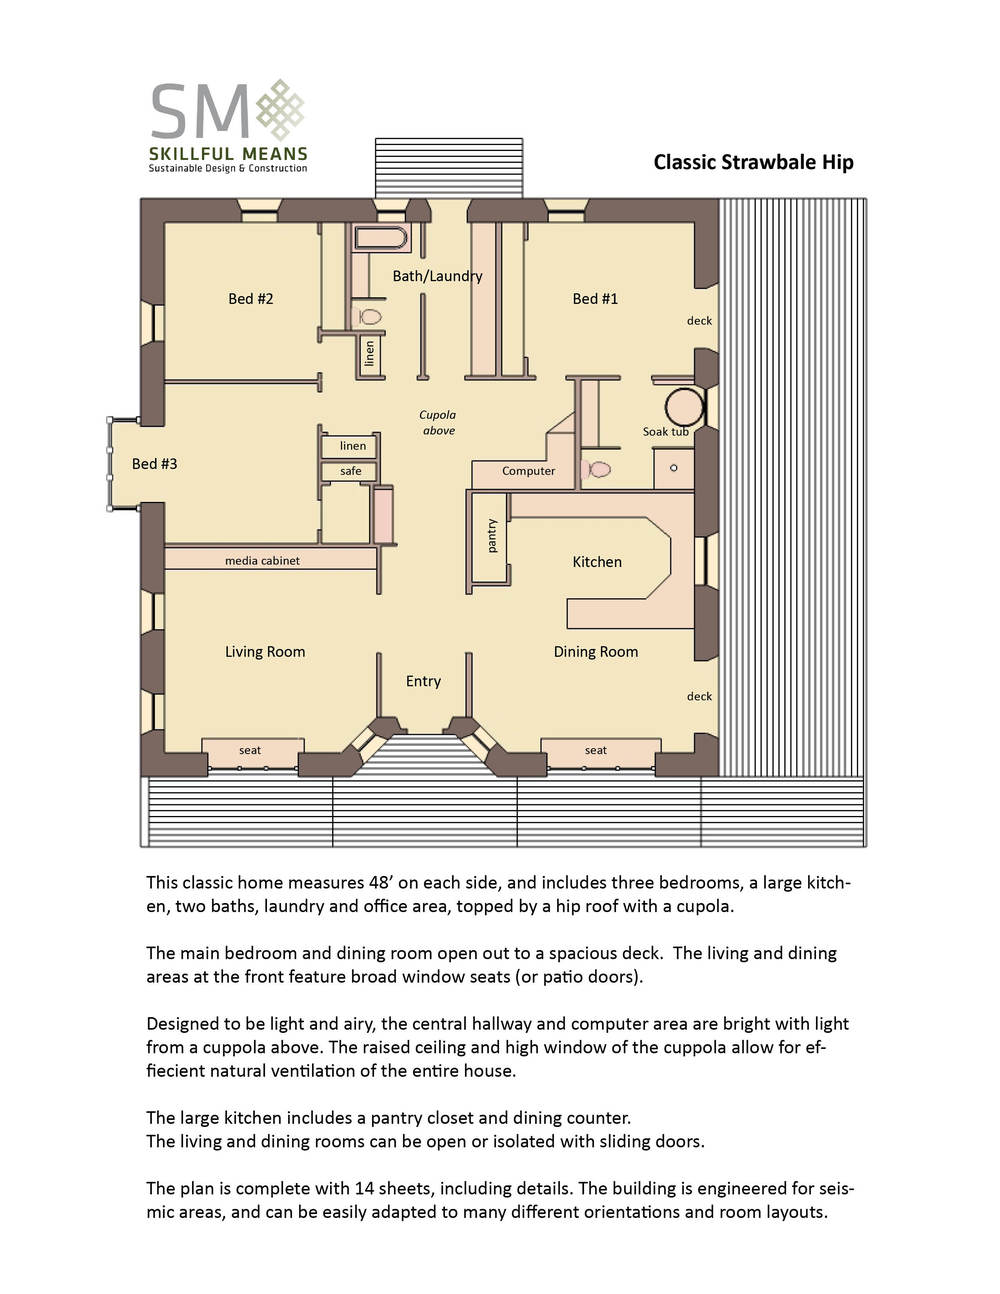 Classic Square House Plan Skillful Means Design Build